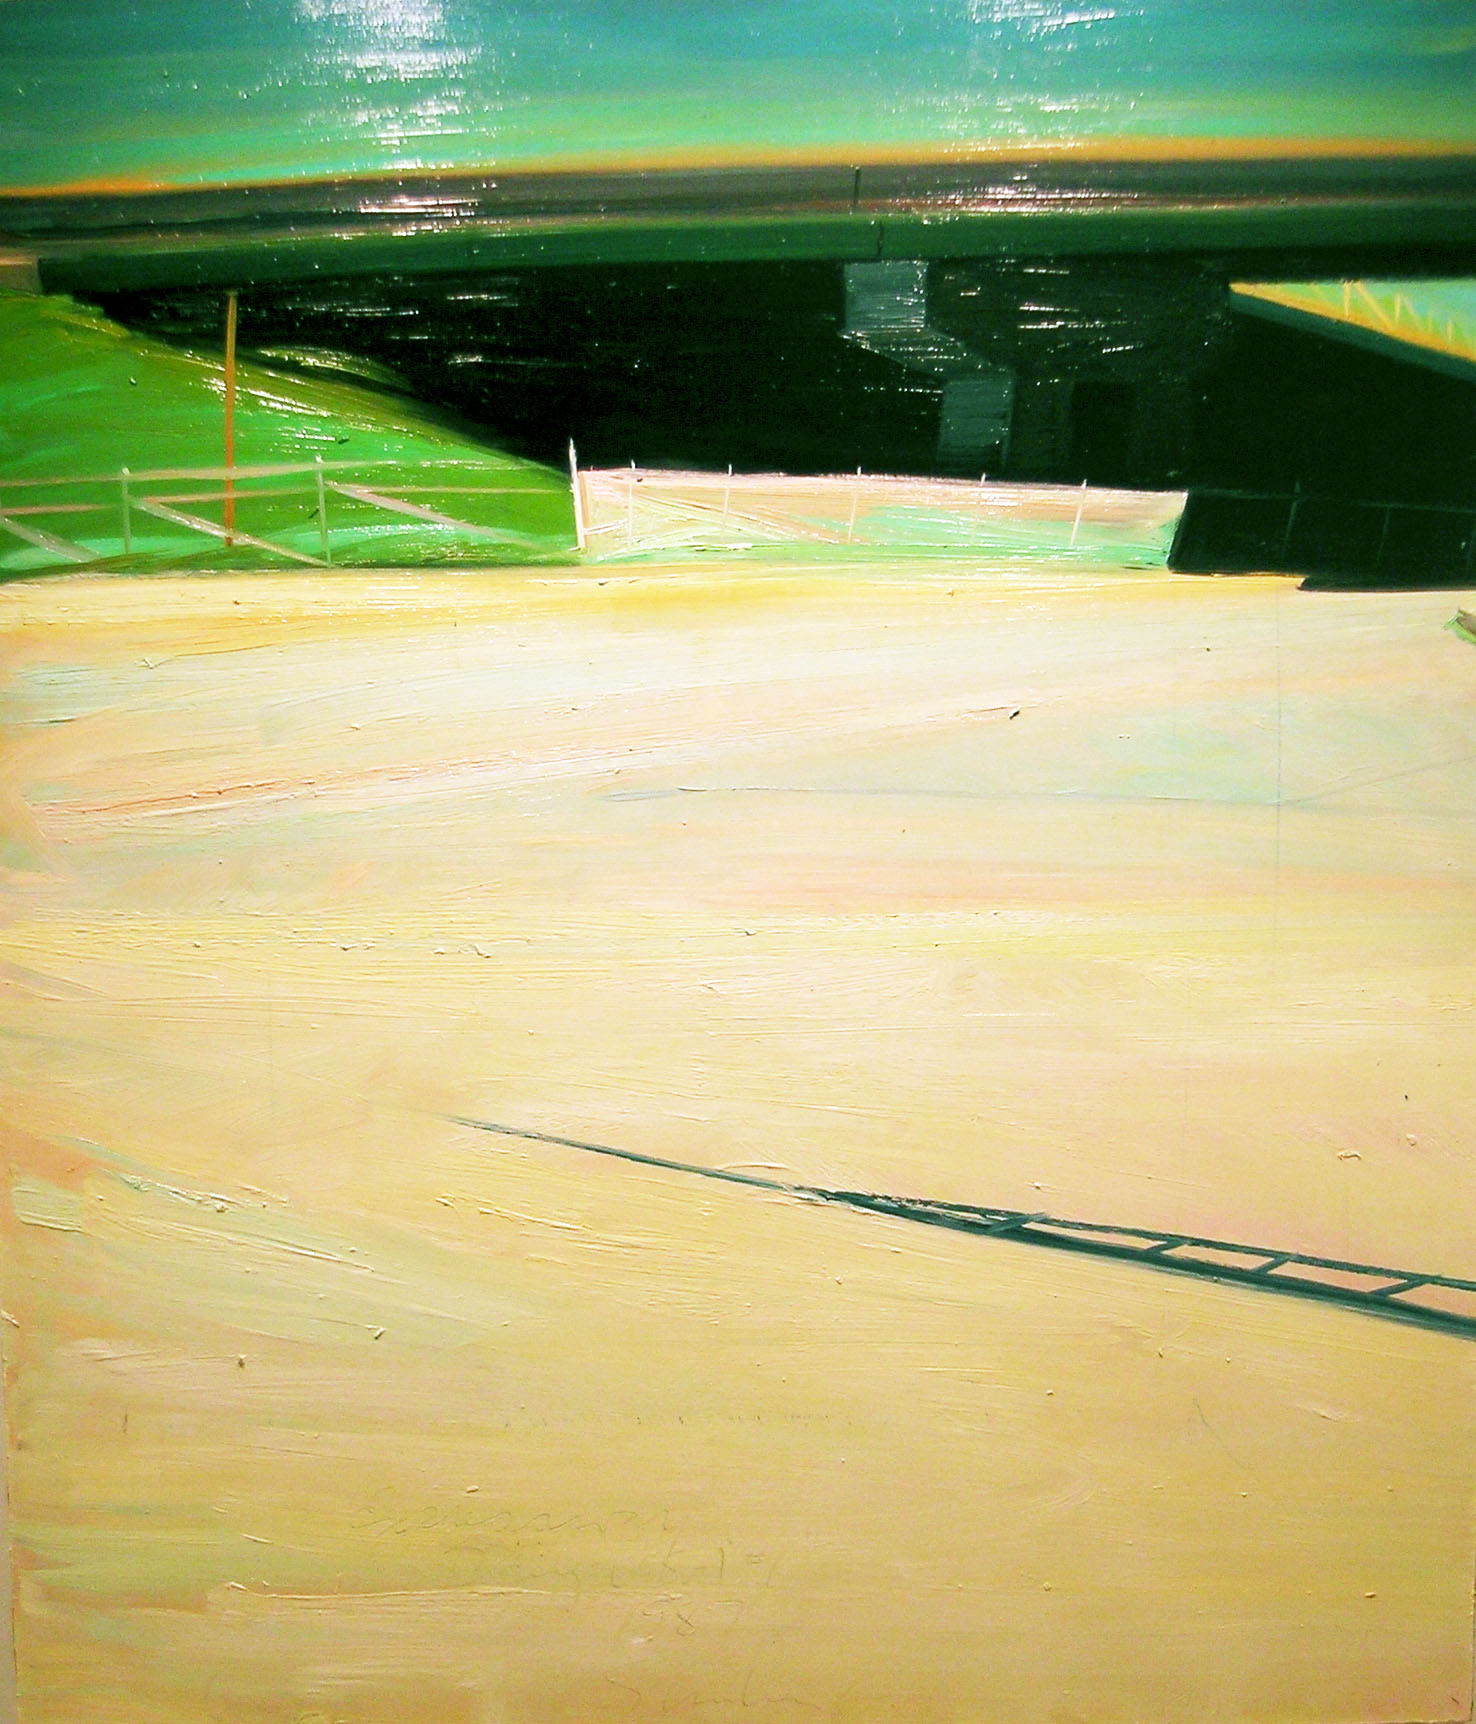 Expressway Bridge, USA #1 , 1987 oil on canvas, 54 1/4 x 46 inches